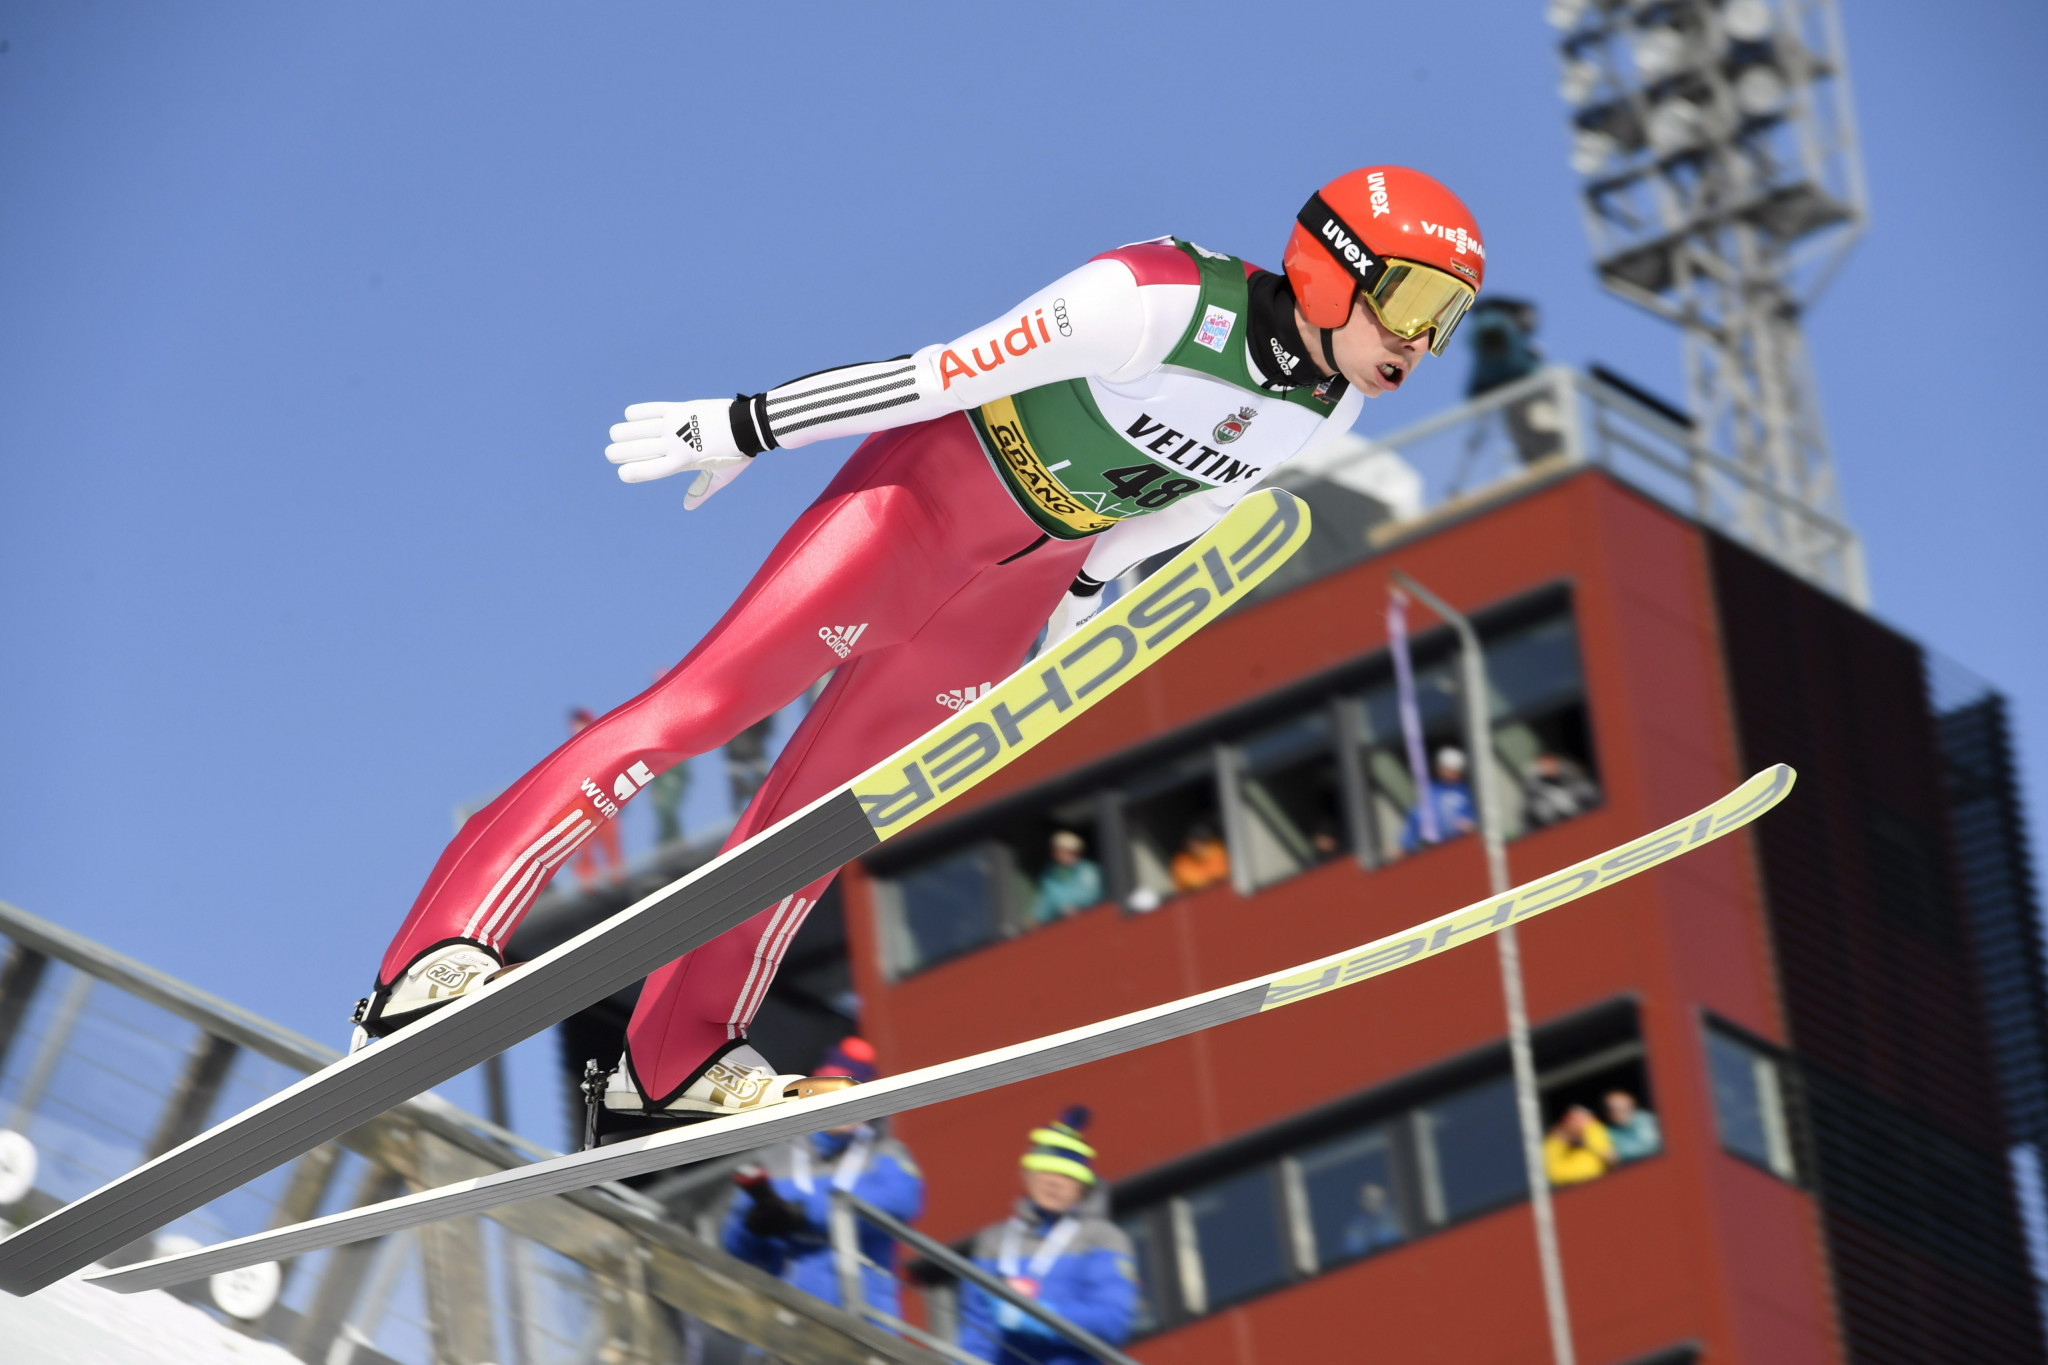 Olympic Nordic Combined heroes return to Germany for World Cup leg